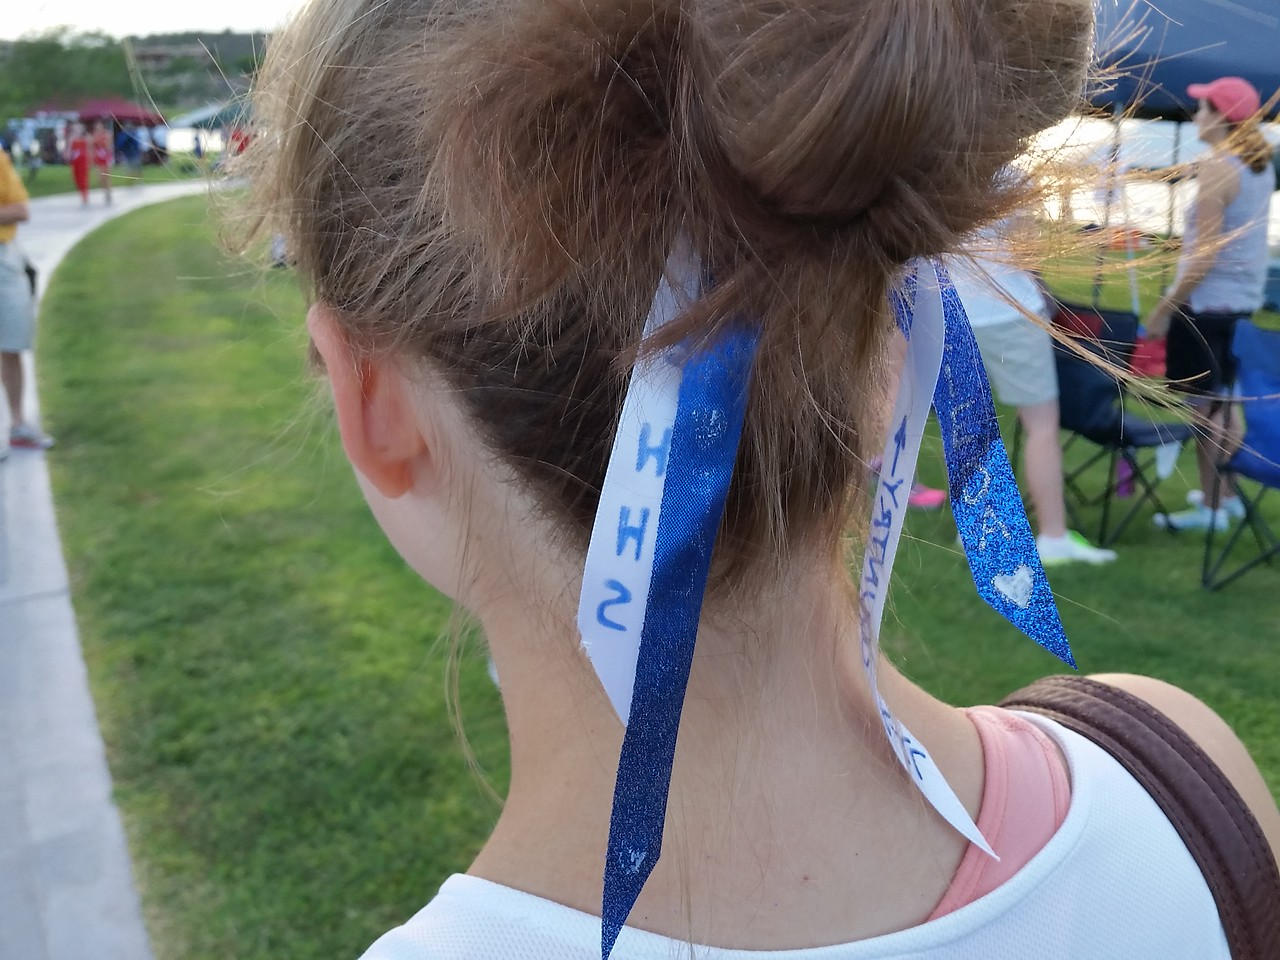 Team hair ribbons created by Frieda and her team